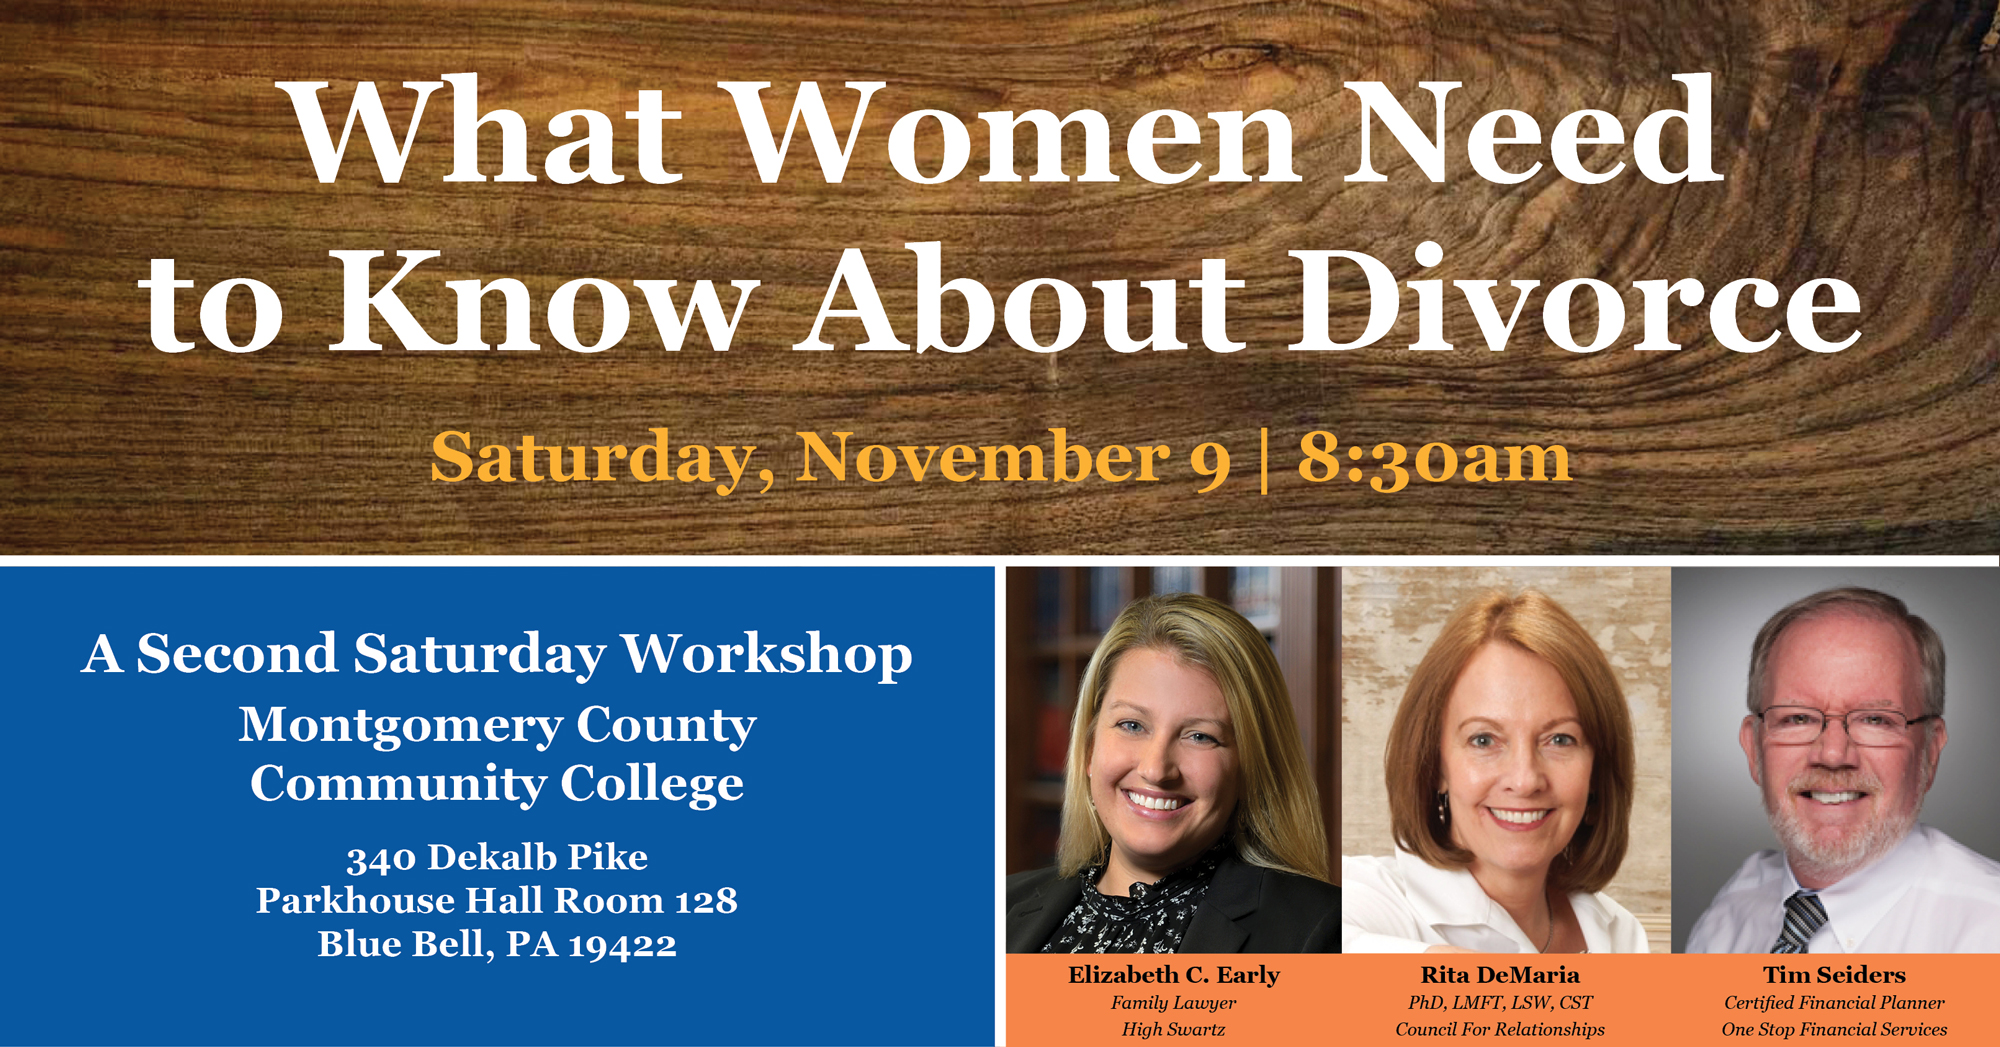 What Women Needs to Know About Divorce: Second Saturday Workshop